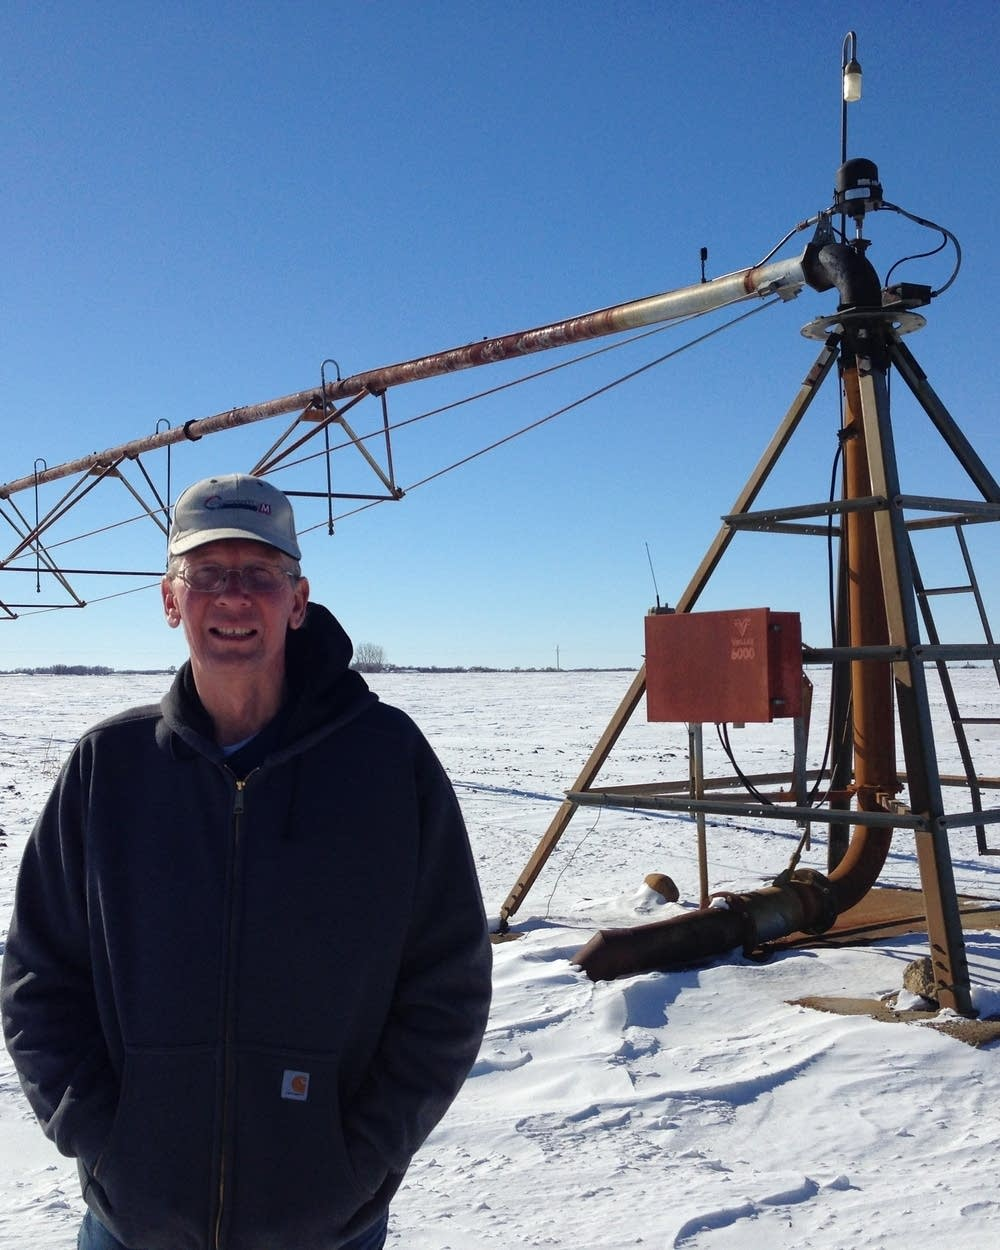 Big rise in irrigation pumping draws DNR attention to